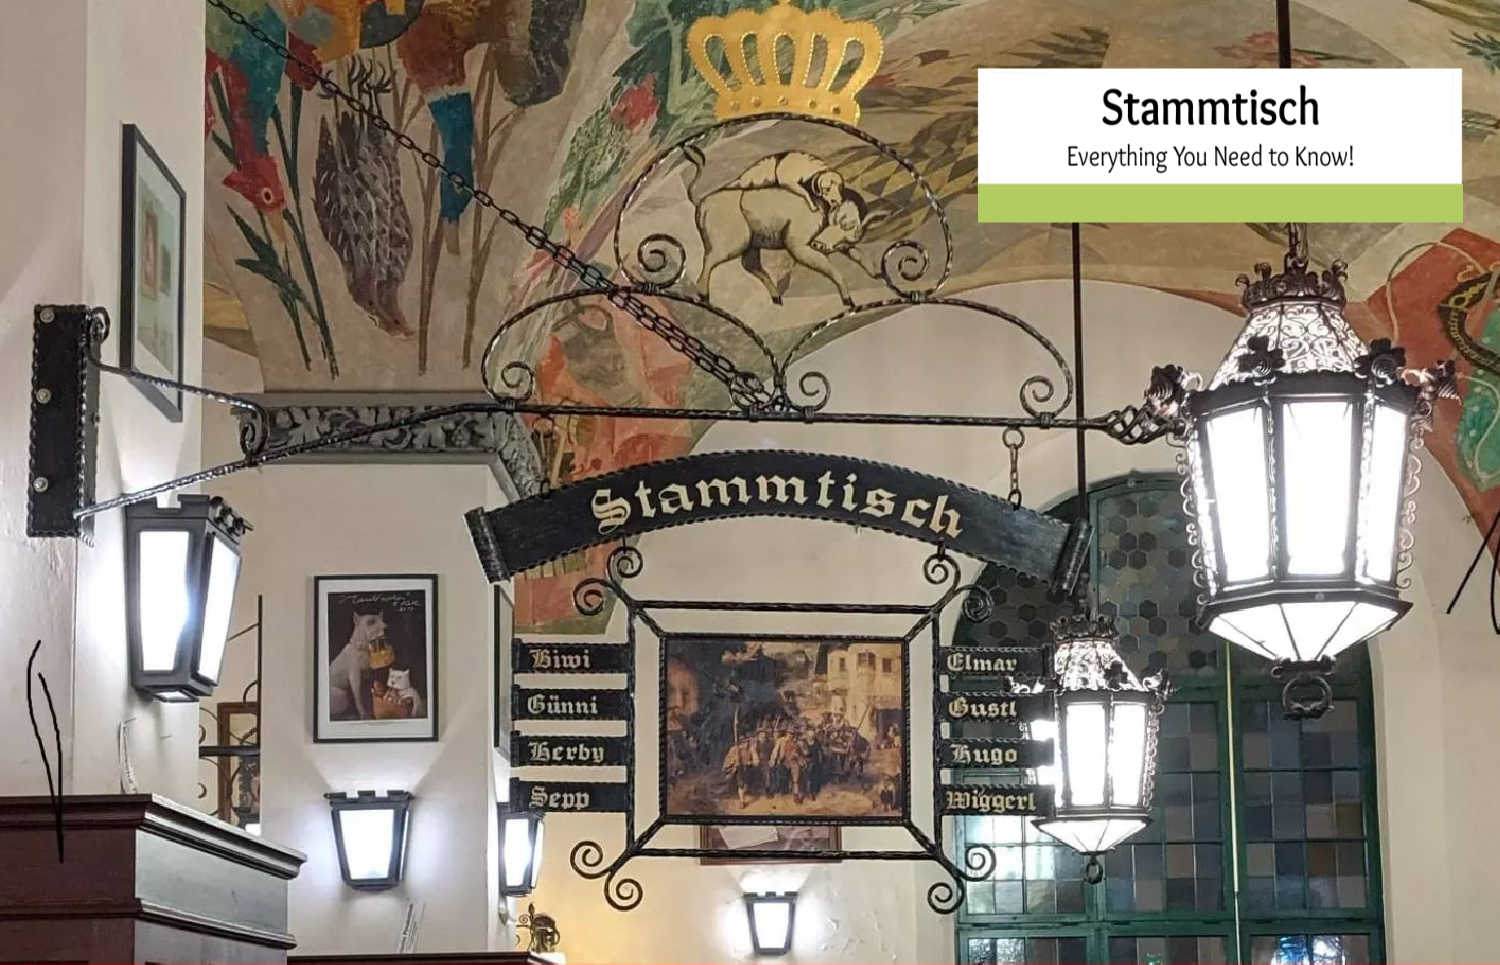 What is a Stammtisch? In Germany, it's a Table for Regulars